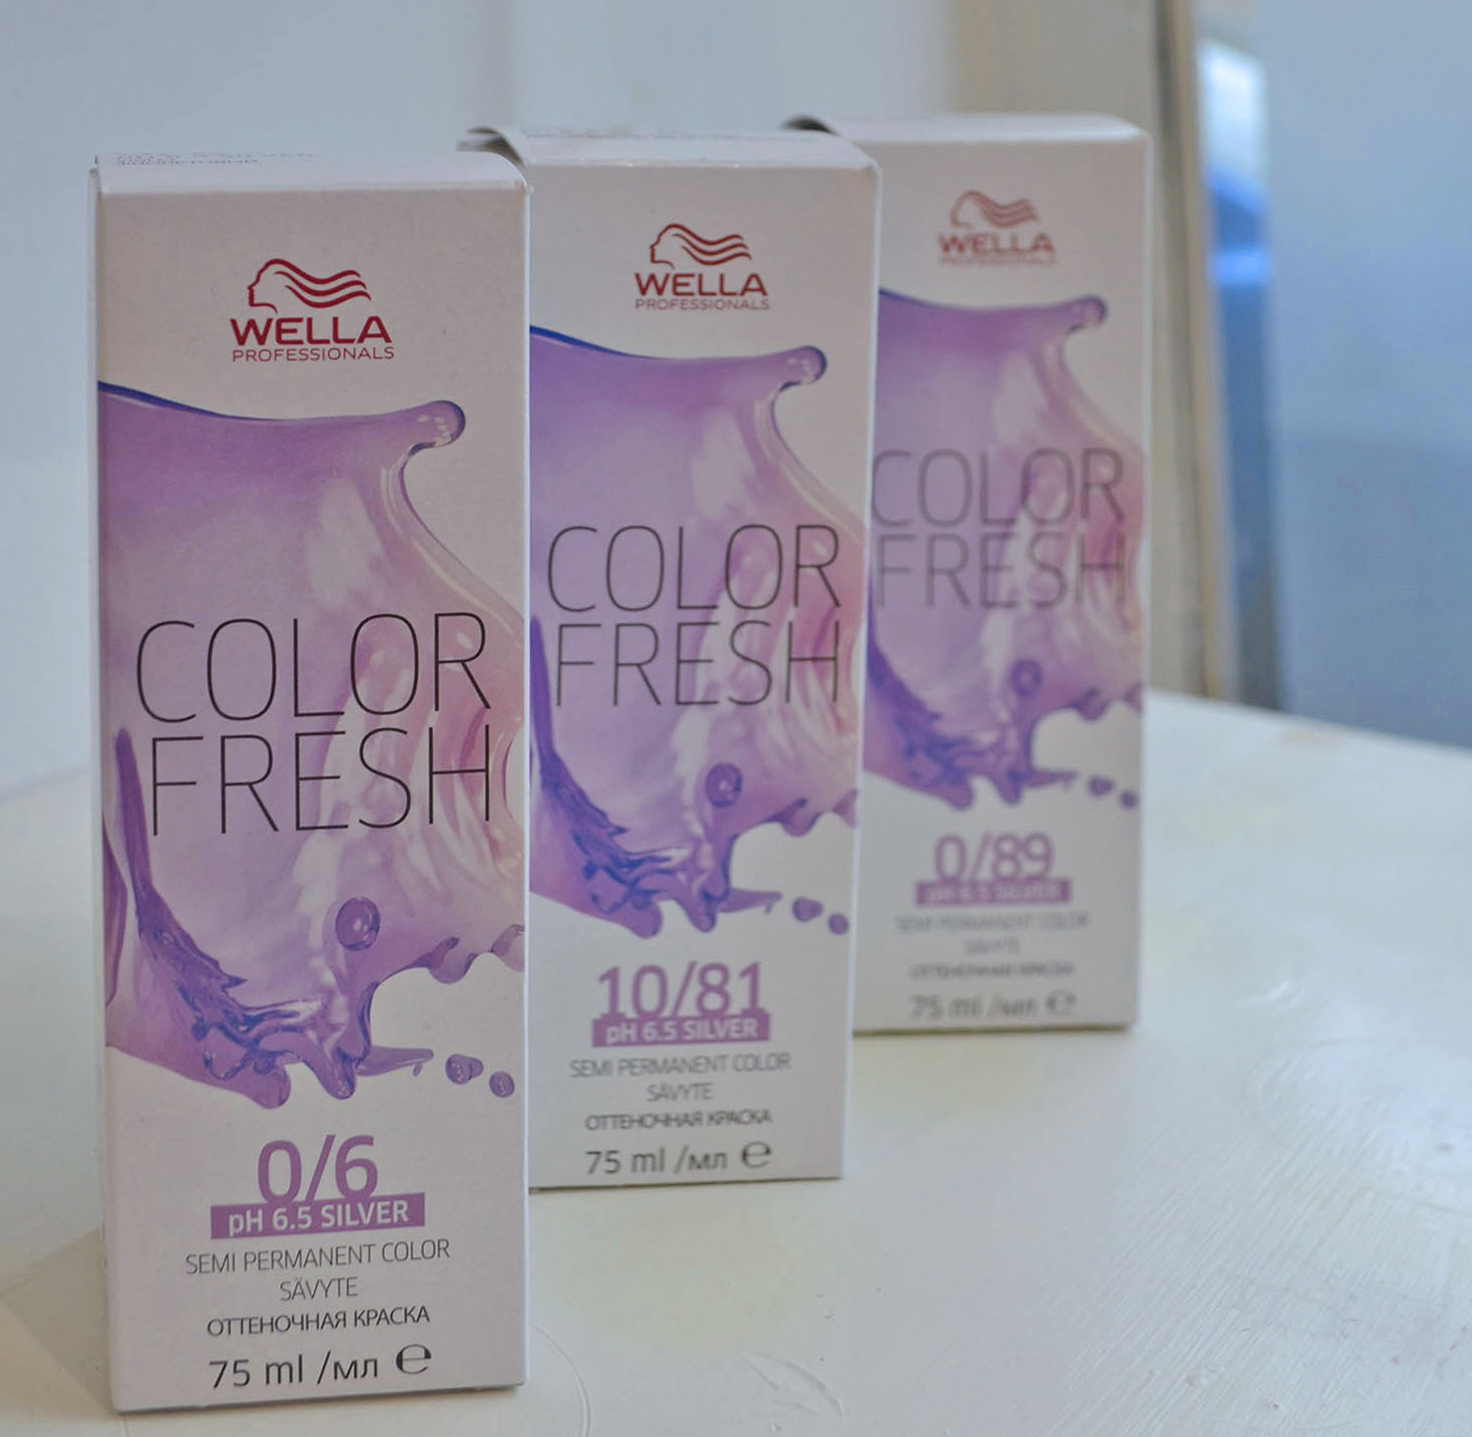 Wella Color Fresh suoraväri